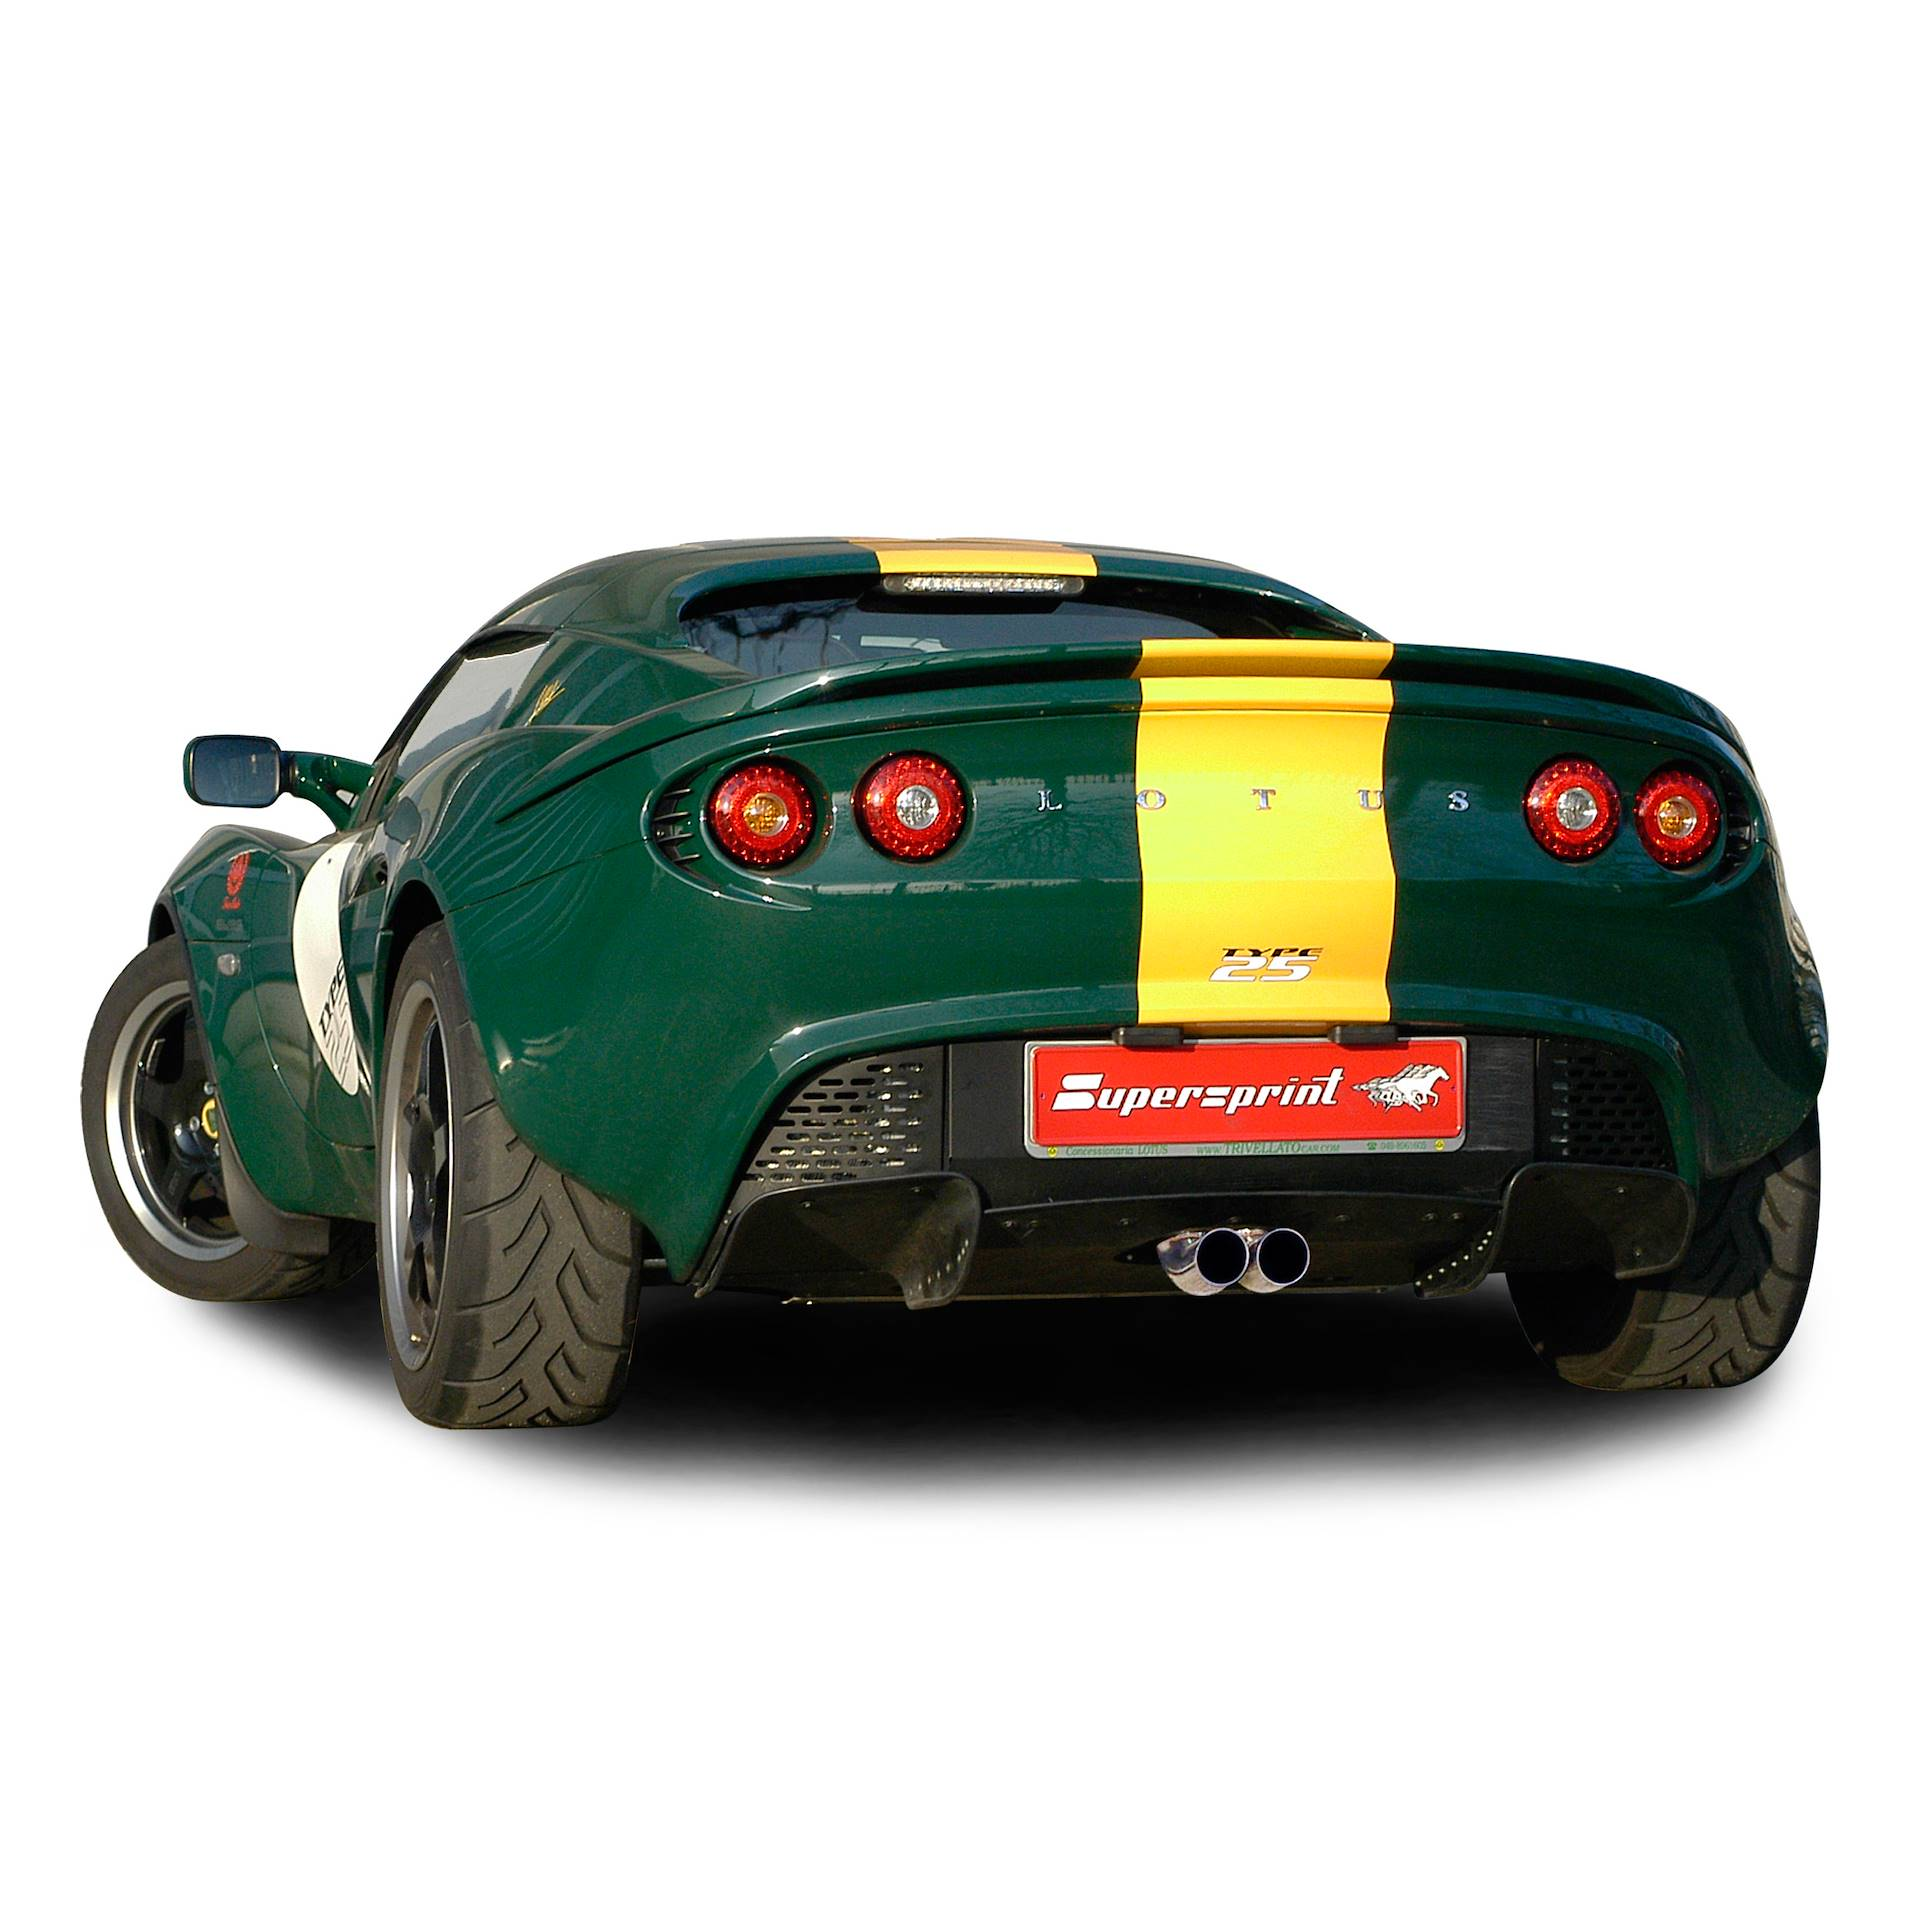 Lotus - LOTUS ELISE TYPE 25 Supercharged (220 Hp)  '06 ->